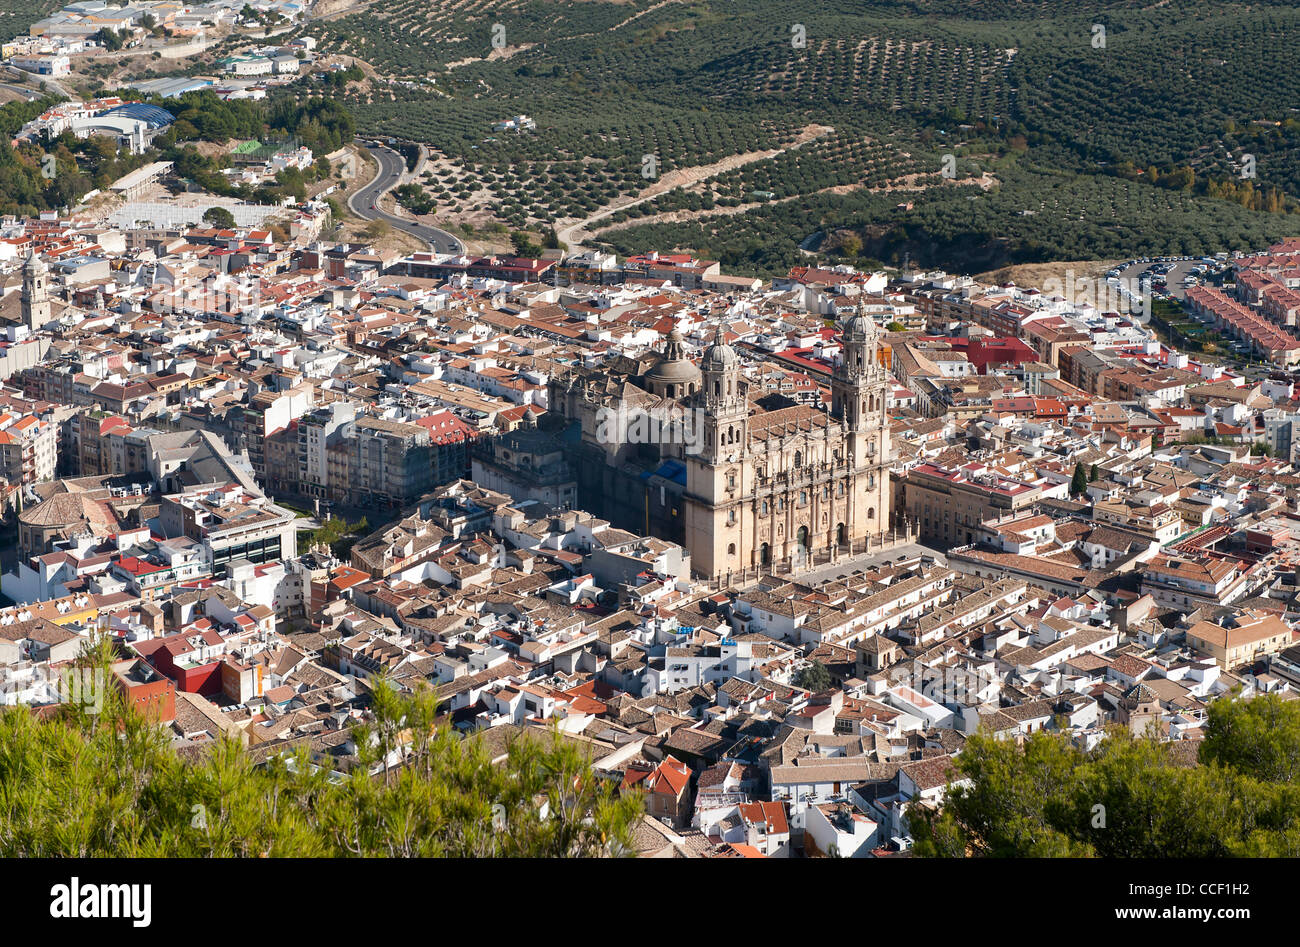 View of the city of Jaen, Andalusia, Spain from the Santa Catalina Castle - Stock Image